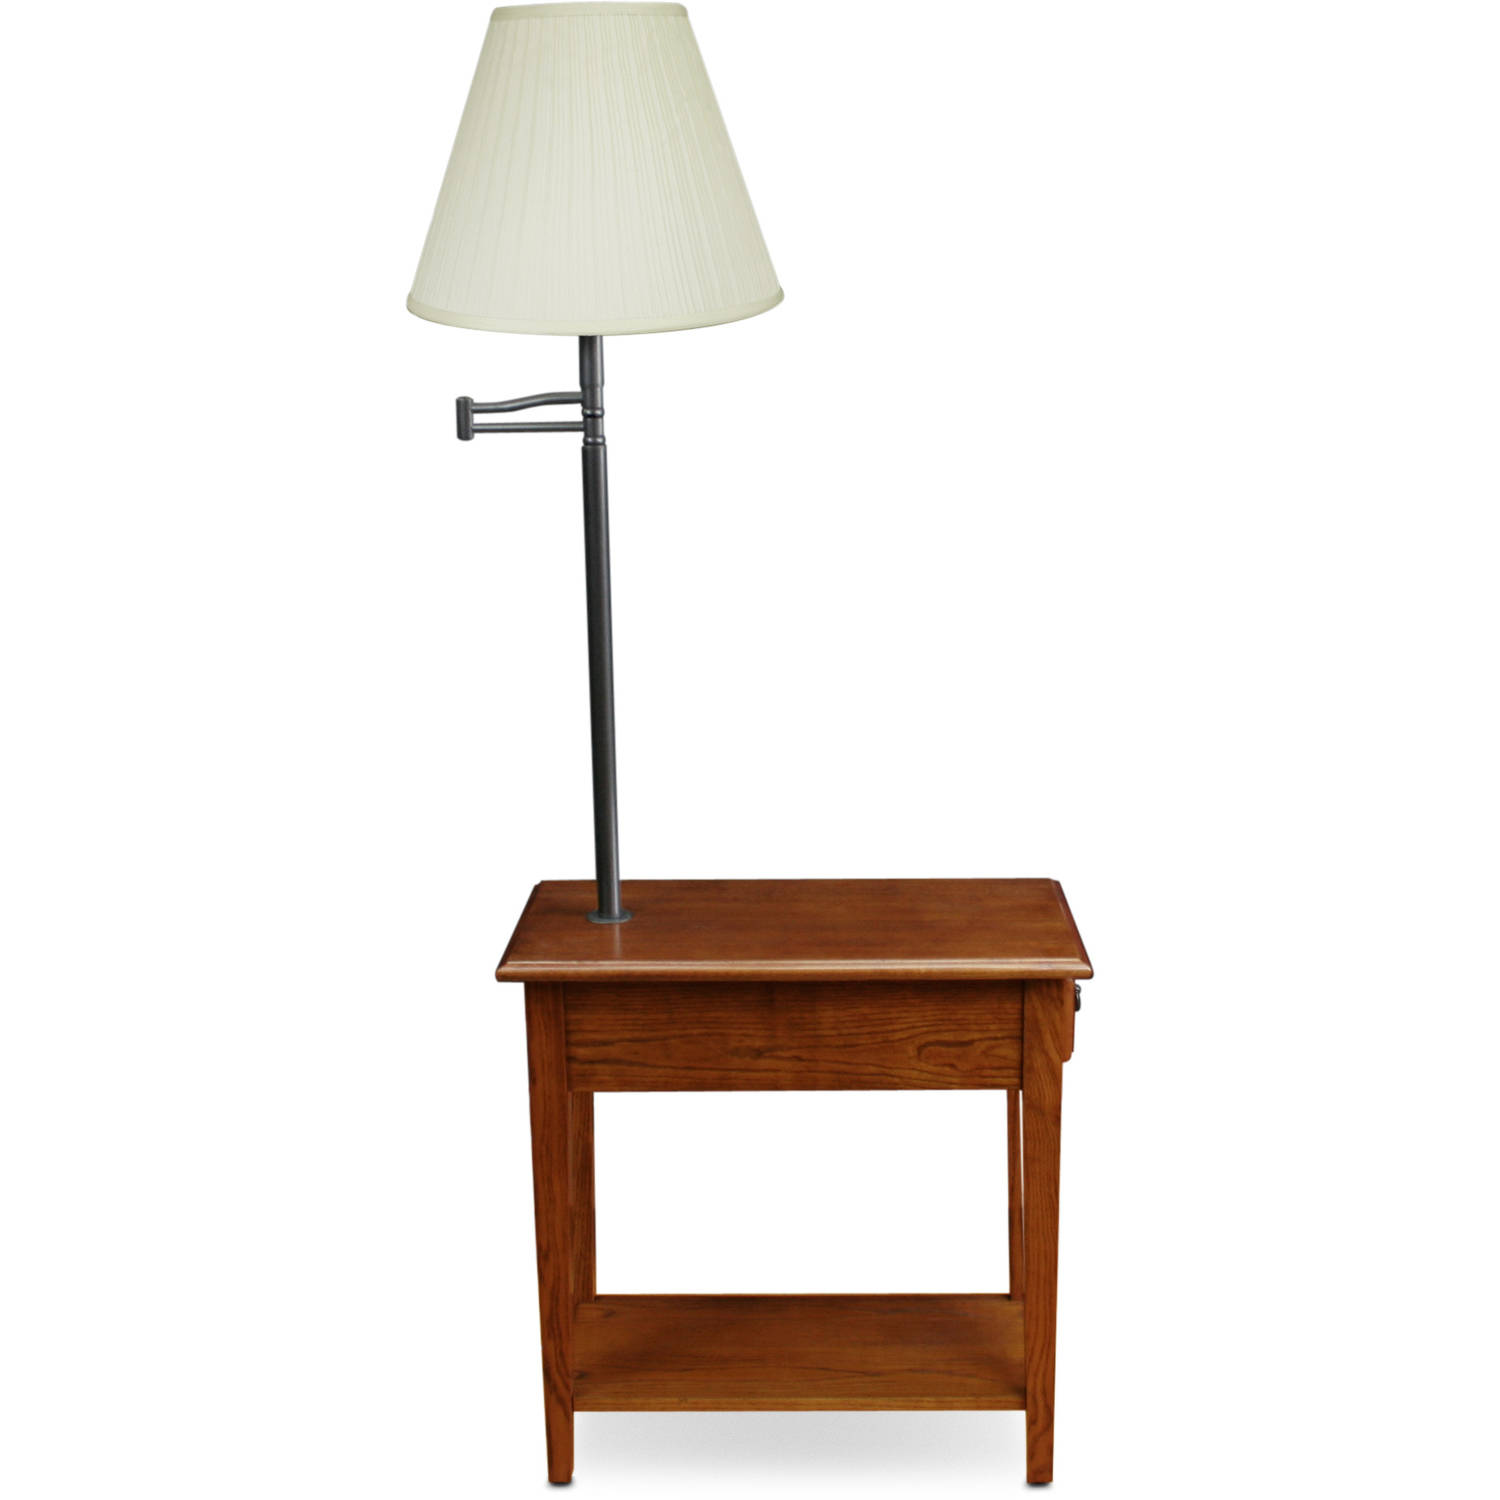 charming small accent table lamp shades lampshades base pink pillar square white red citrus oval tiny black gourd lights target ceramic glass argos marble bathroom bedroom wooden